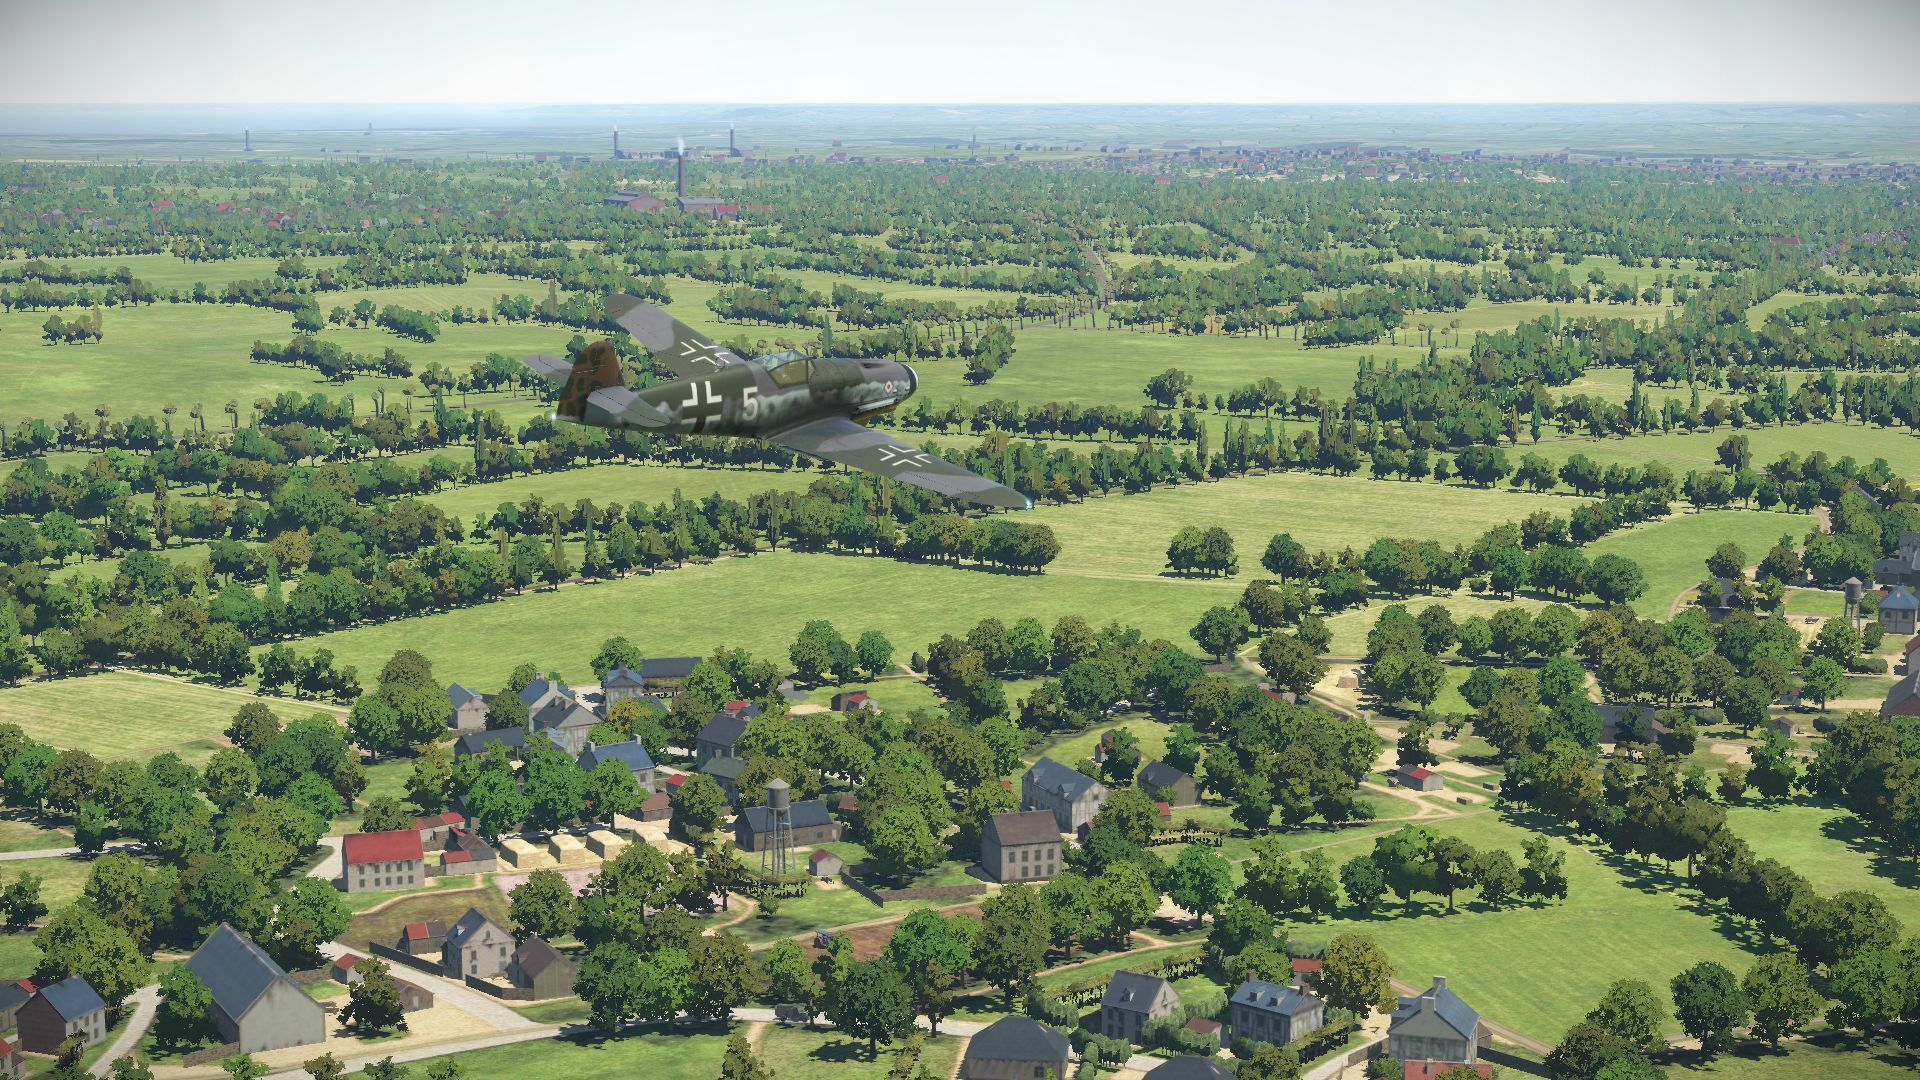 http://www.mudspike.com/wp-content/uploads/2017/04/109-over-normandy.jpg